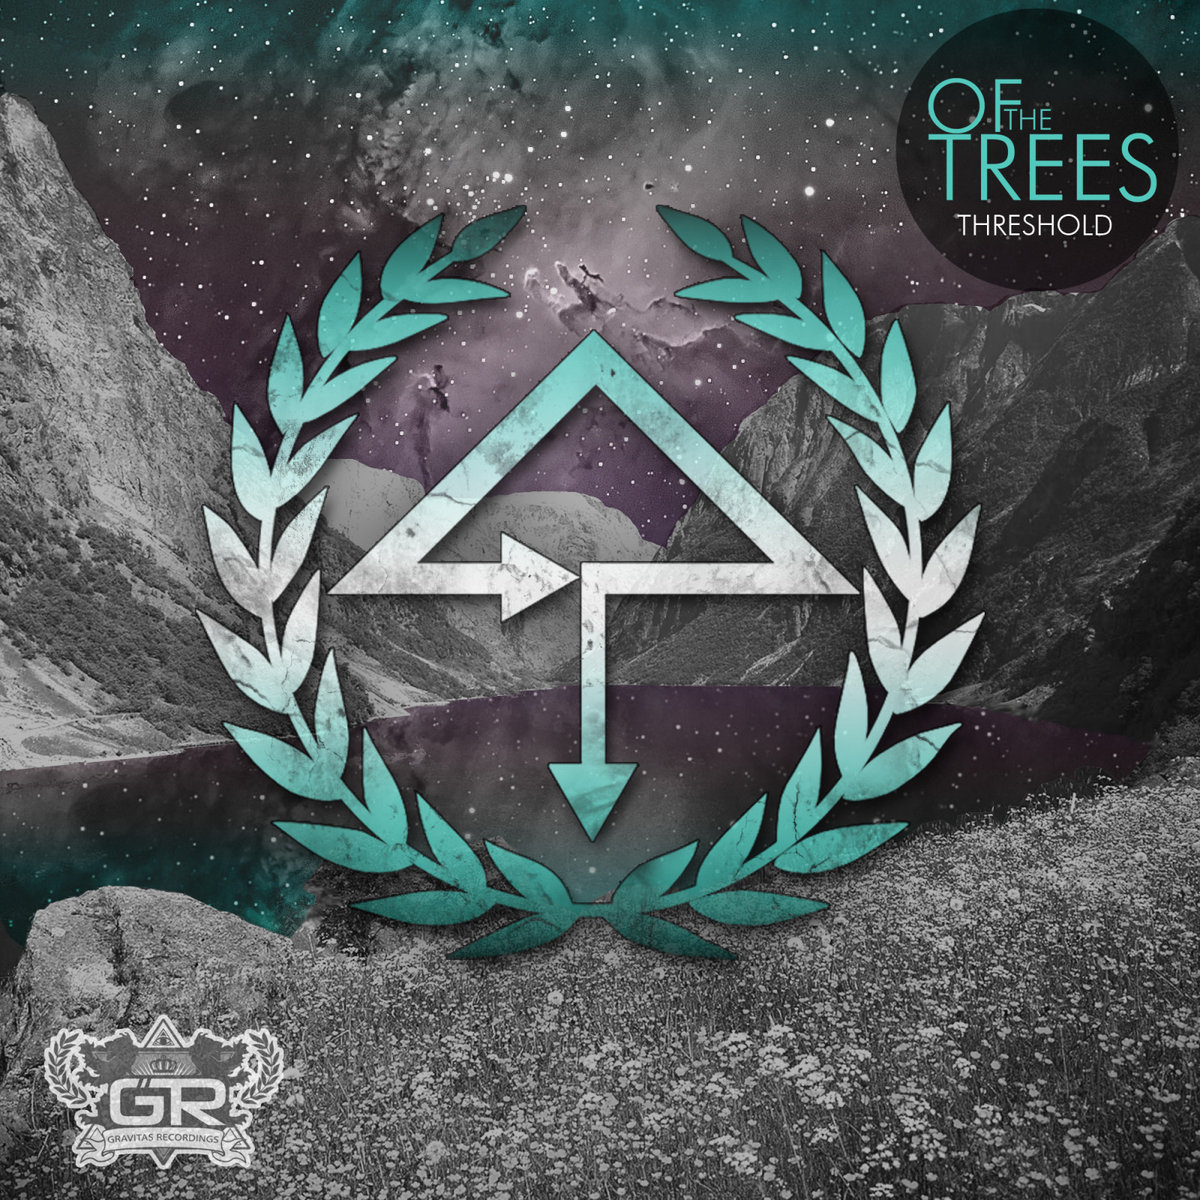 Of The Trees - First Flight @ 'Threshold' album (808, dope music)